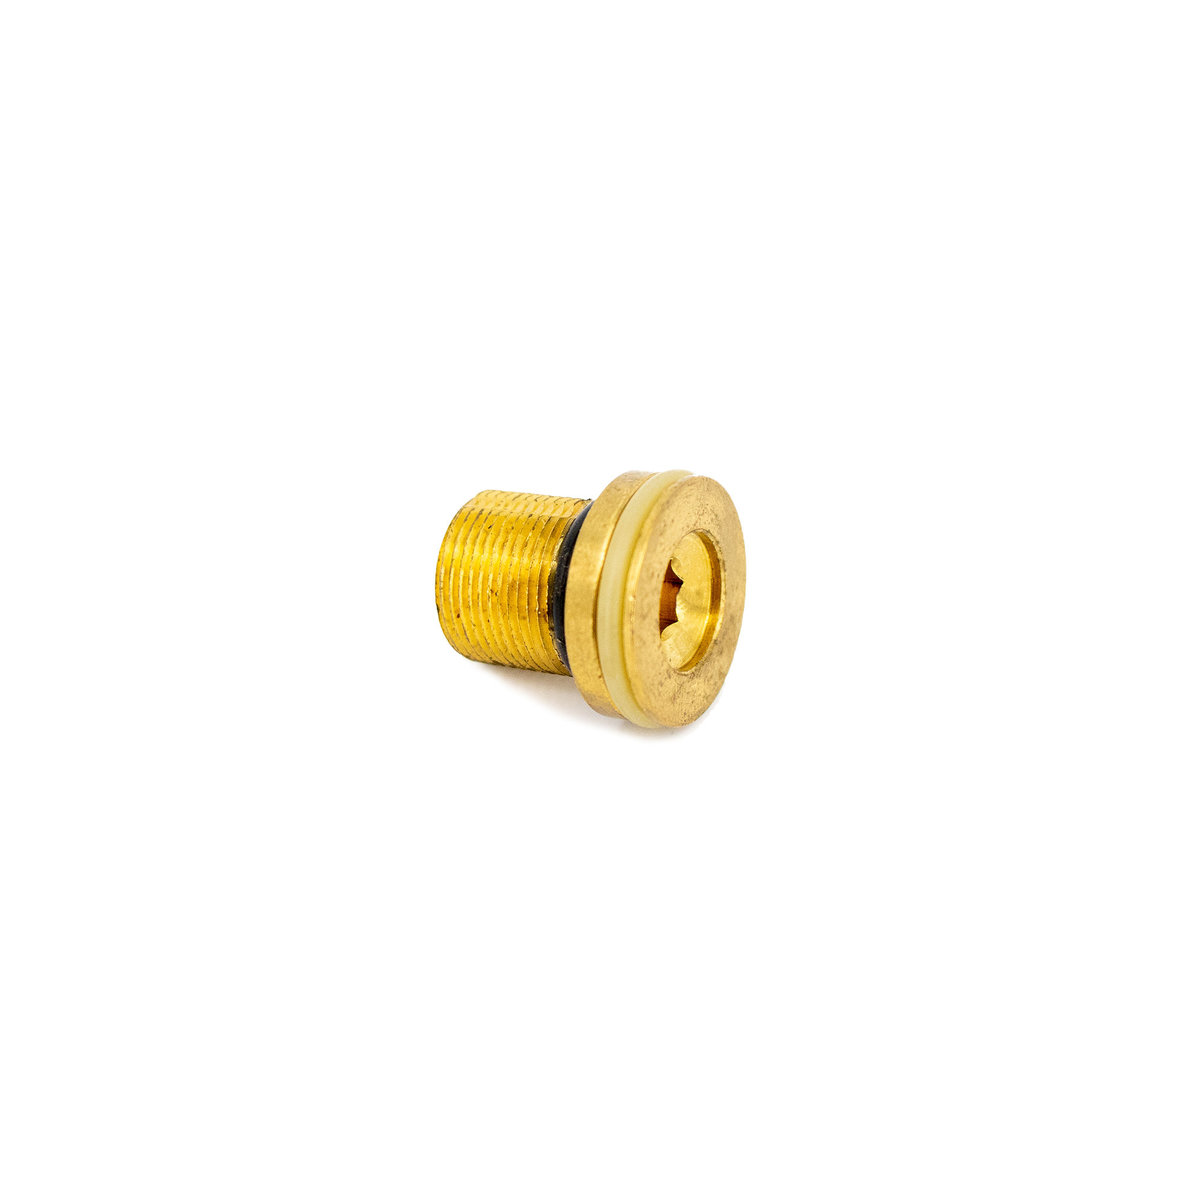 View larger image of Tank Kits/Parts - Hero P3 Regulator Flange (Brass)